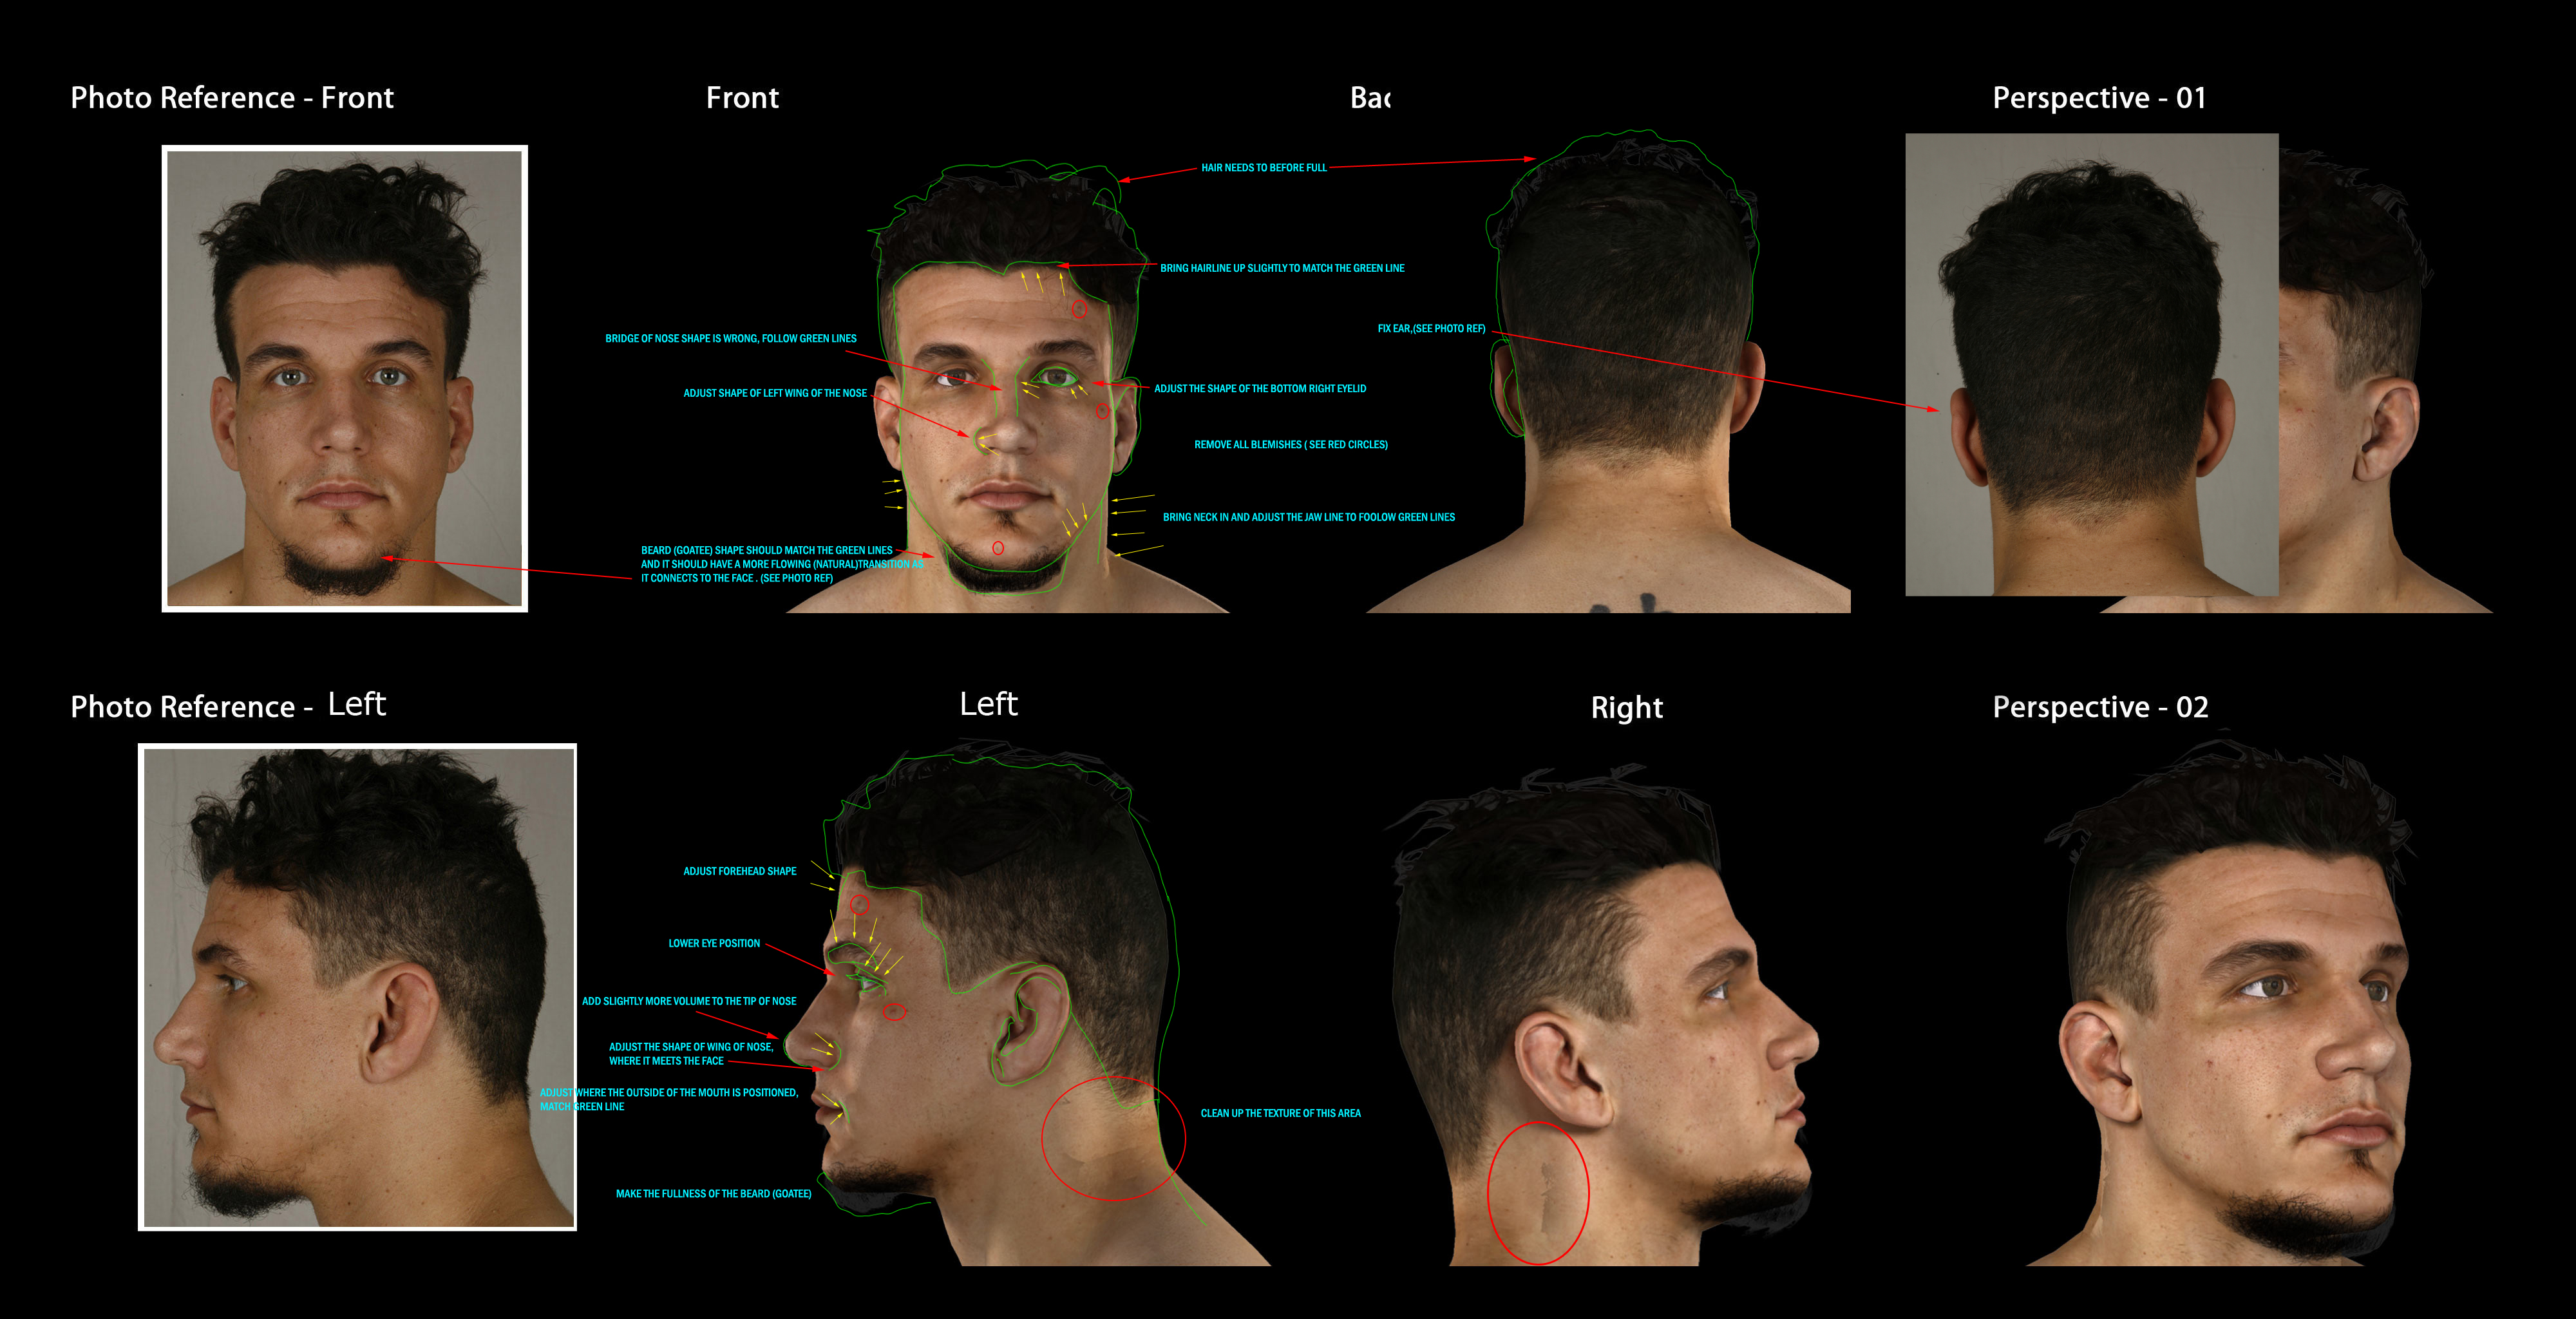 013_frank_mir_head_hi copy.jpg